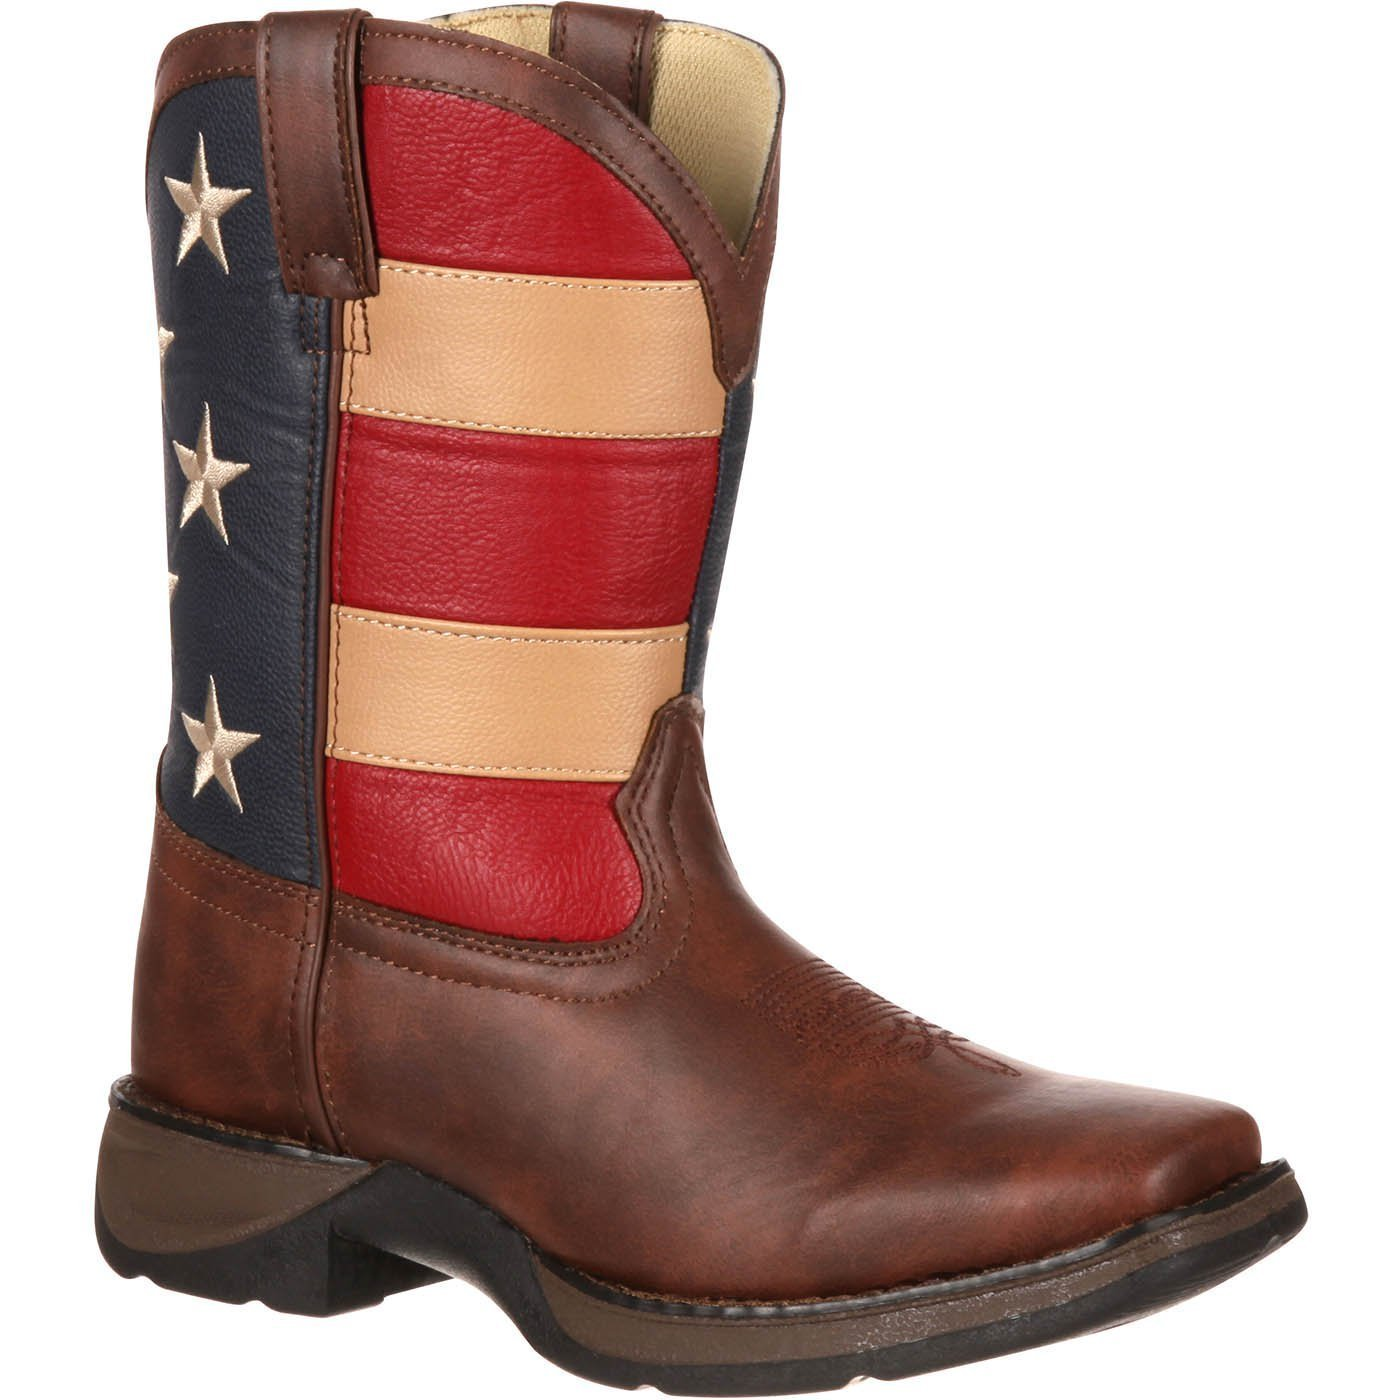 Durango Kids BT245 Lil' 8 Inch Patriotic,Brown/Union Flag,9 Toddler